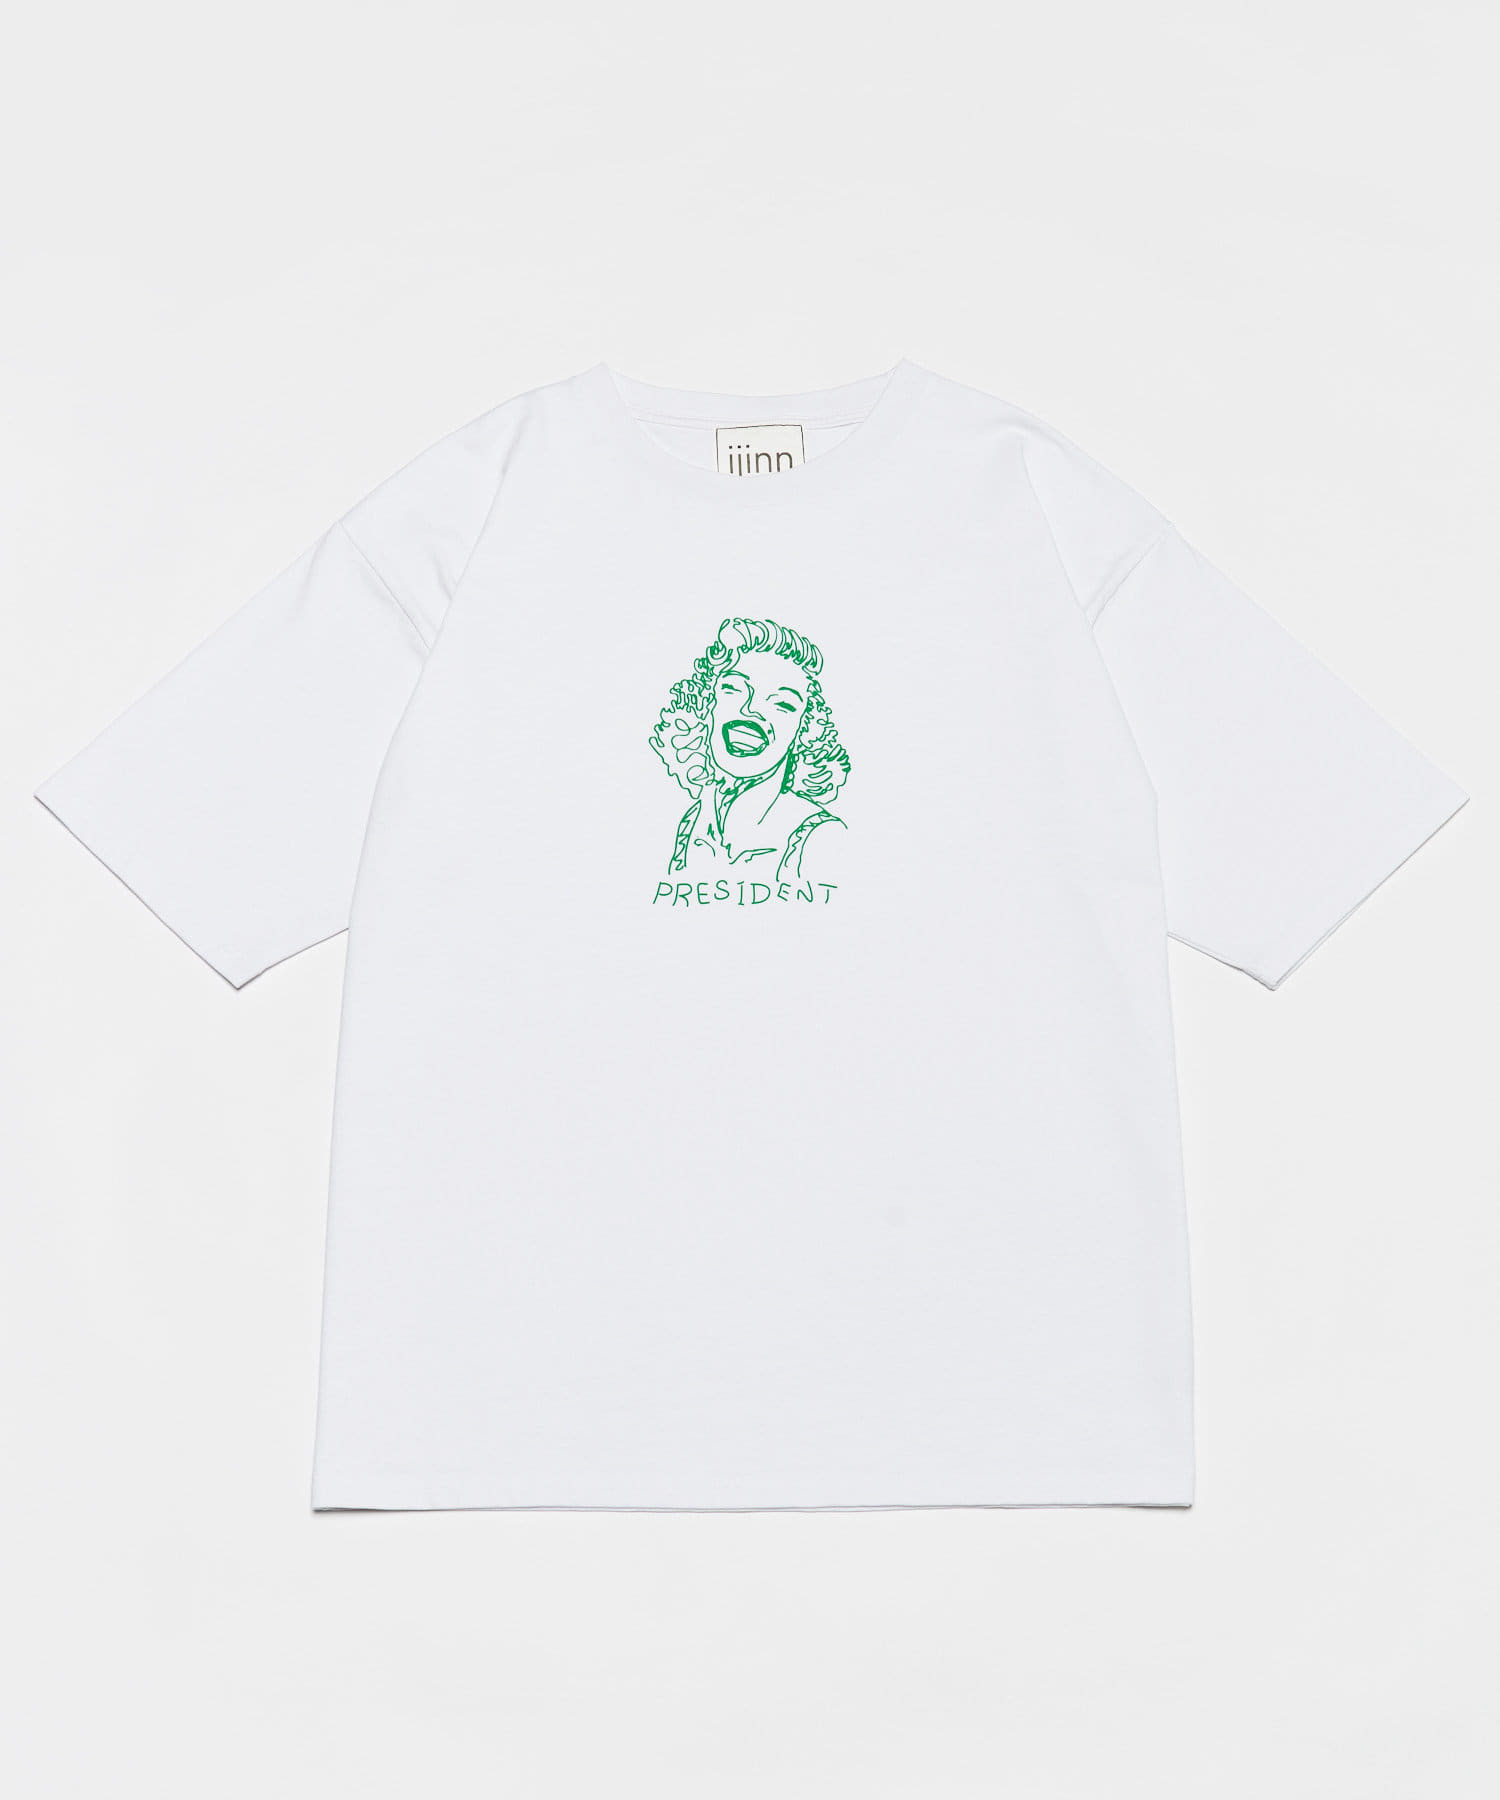 WHO'S WHO gallery(フーズフーギャラリー) 《WEB限定》偉人TEE